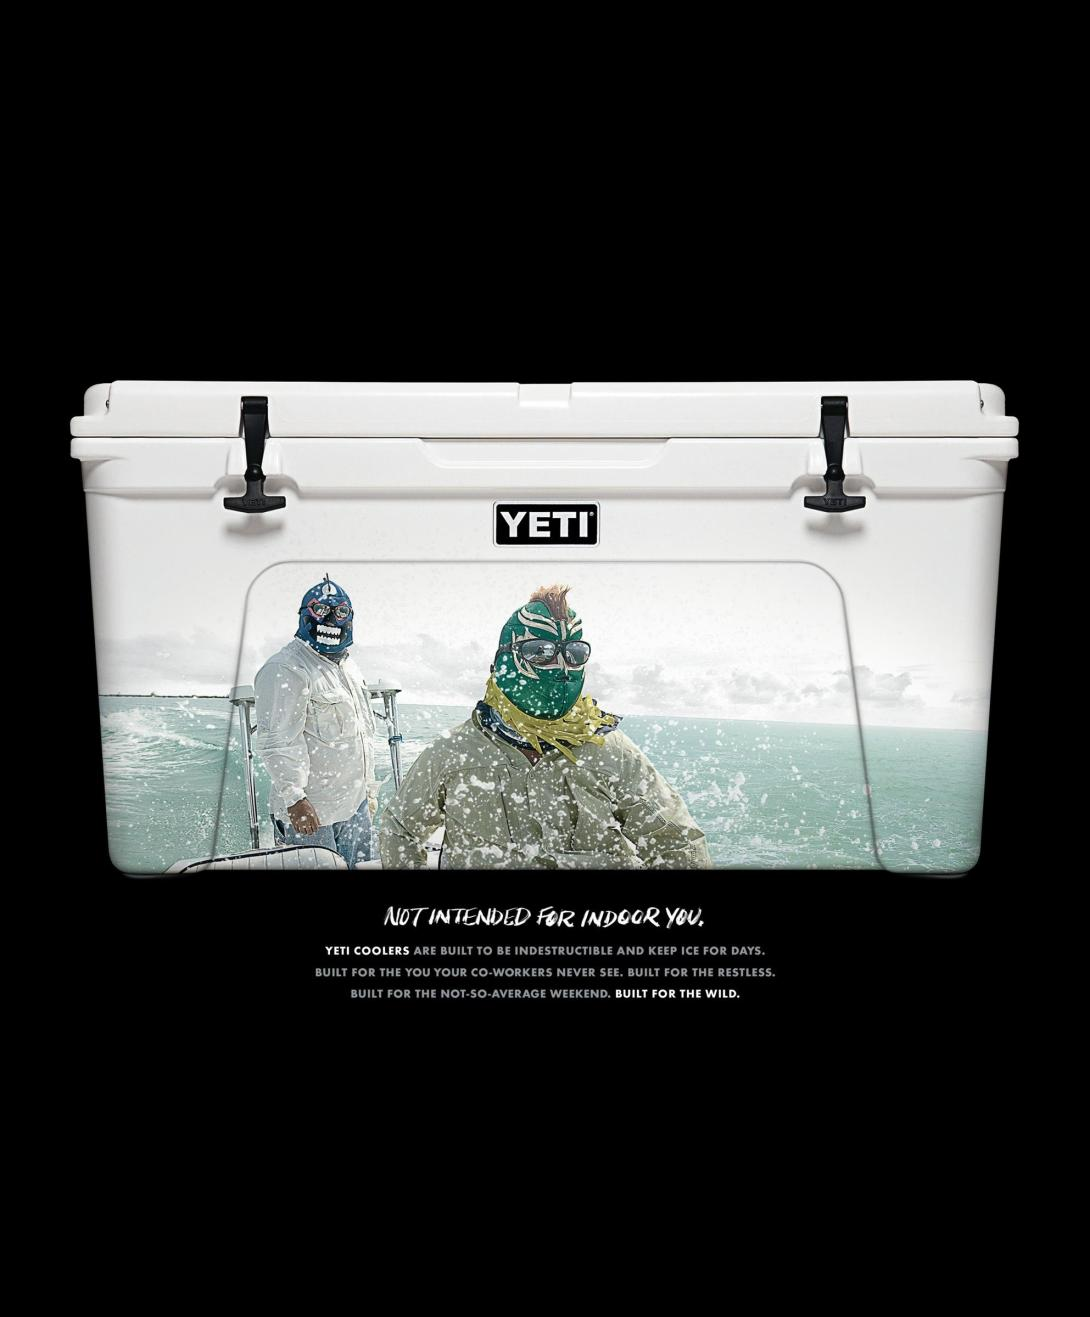 yeti_coolers_print-luchadores_aotw-2